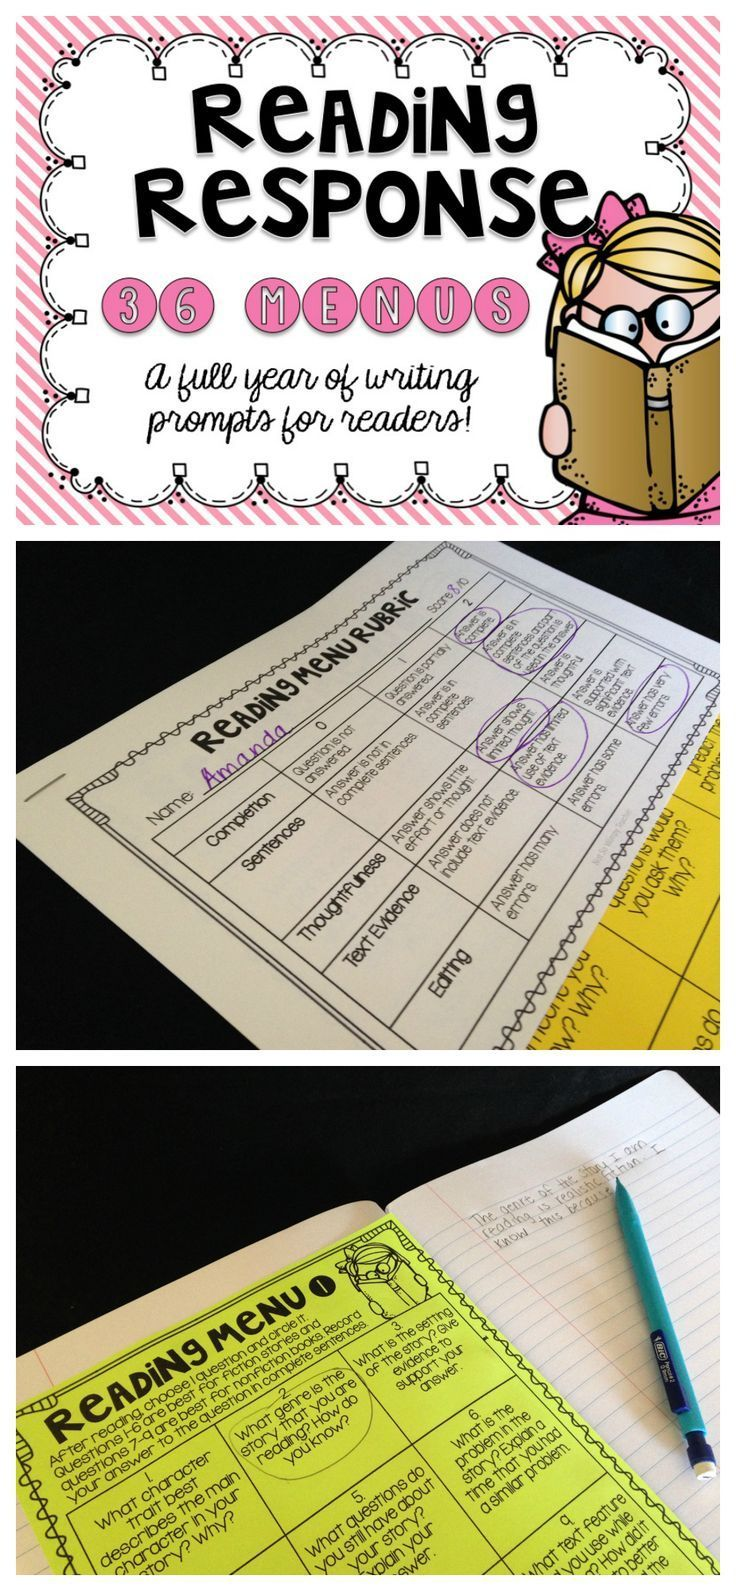 手机壳定制  free run Reading response menus give students some choice while allowing teachers to hold students accountable for independent reading and assess their understanding of various comprehension skills Learning to write about text will help students to deepen their understanding and prepare them for standardized testing